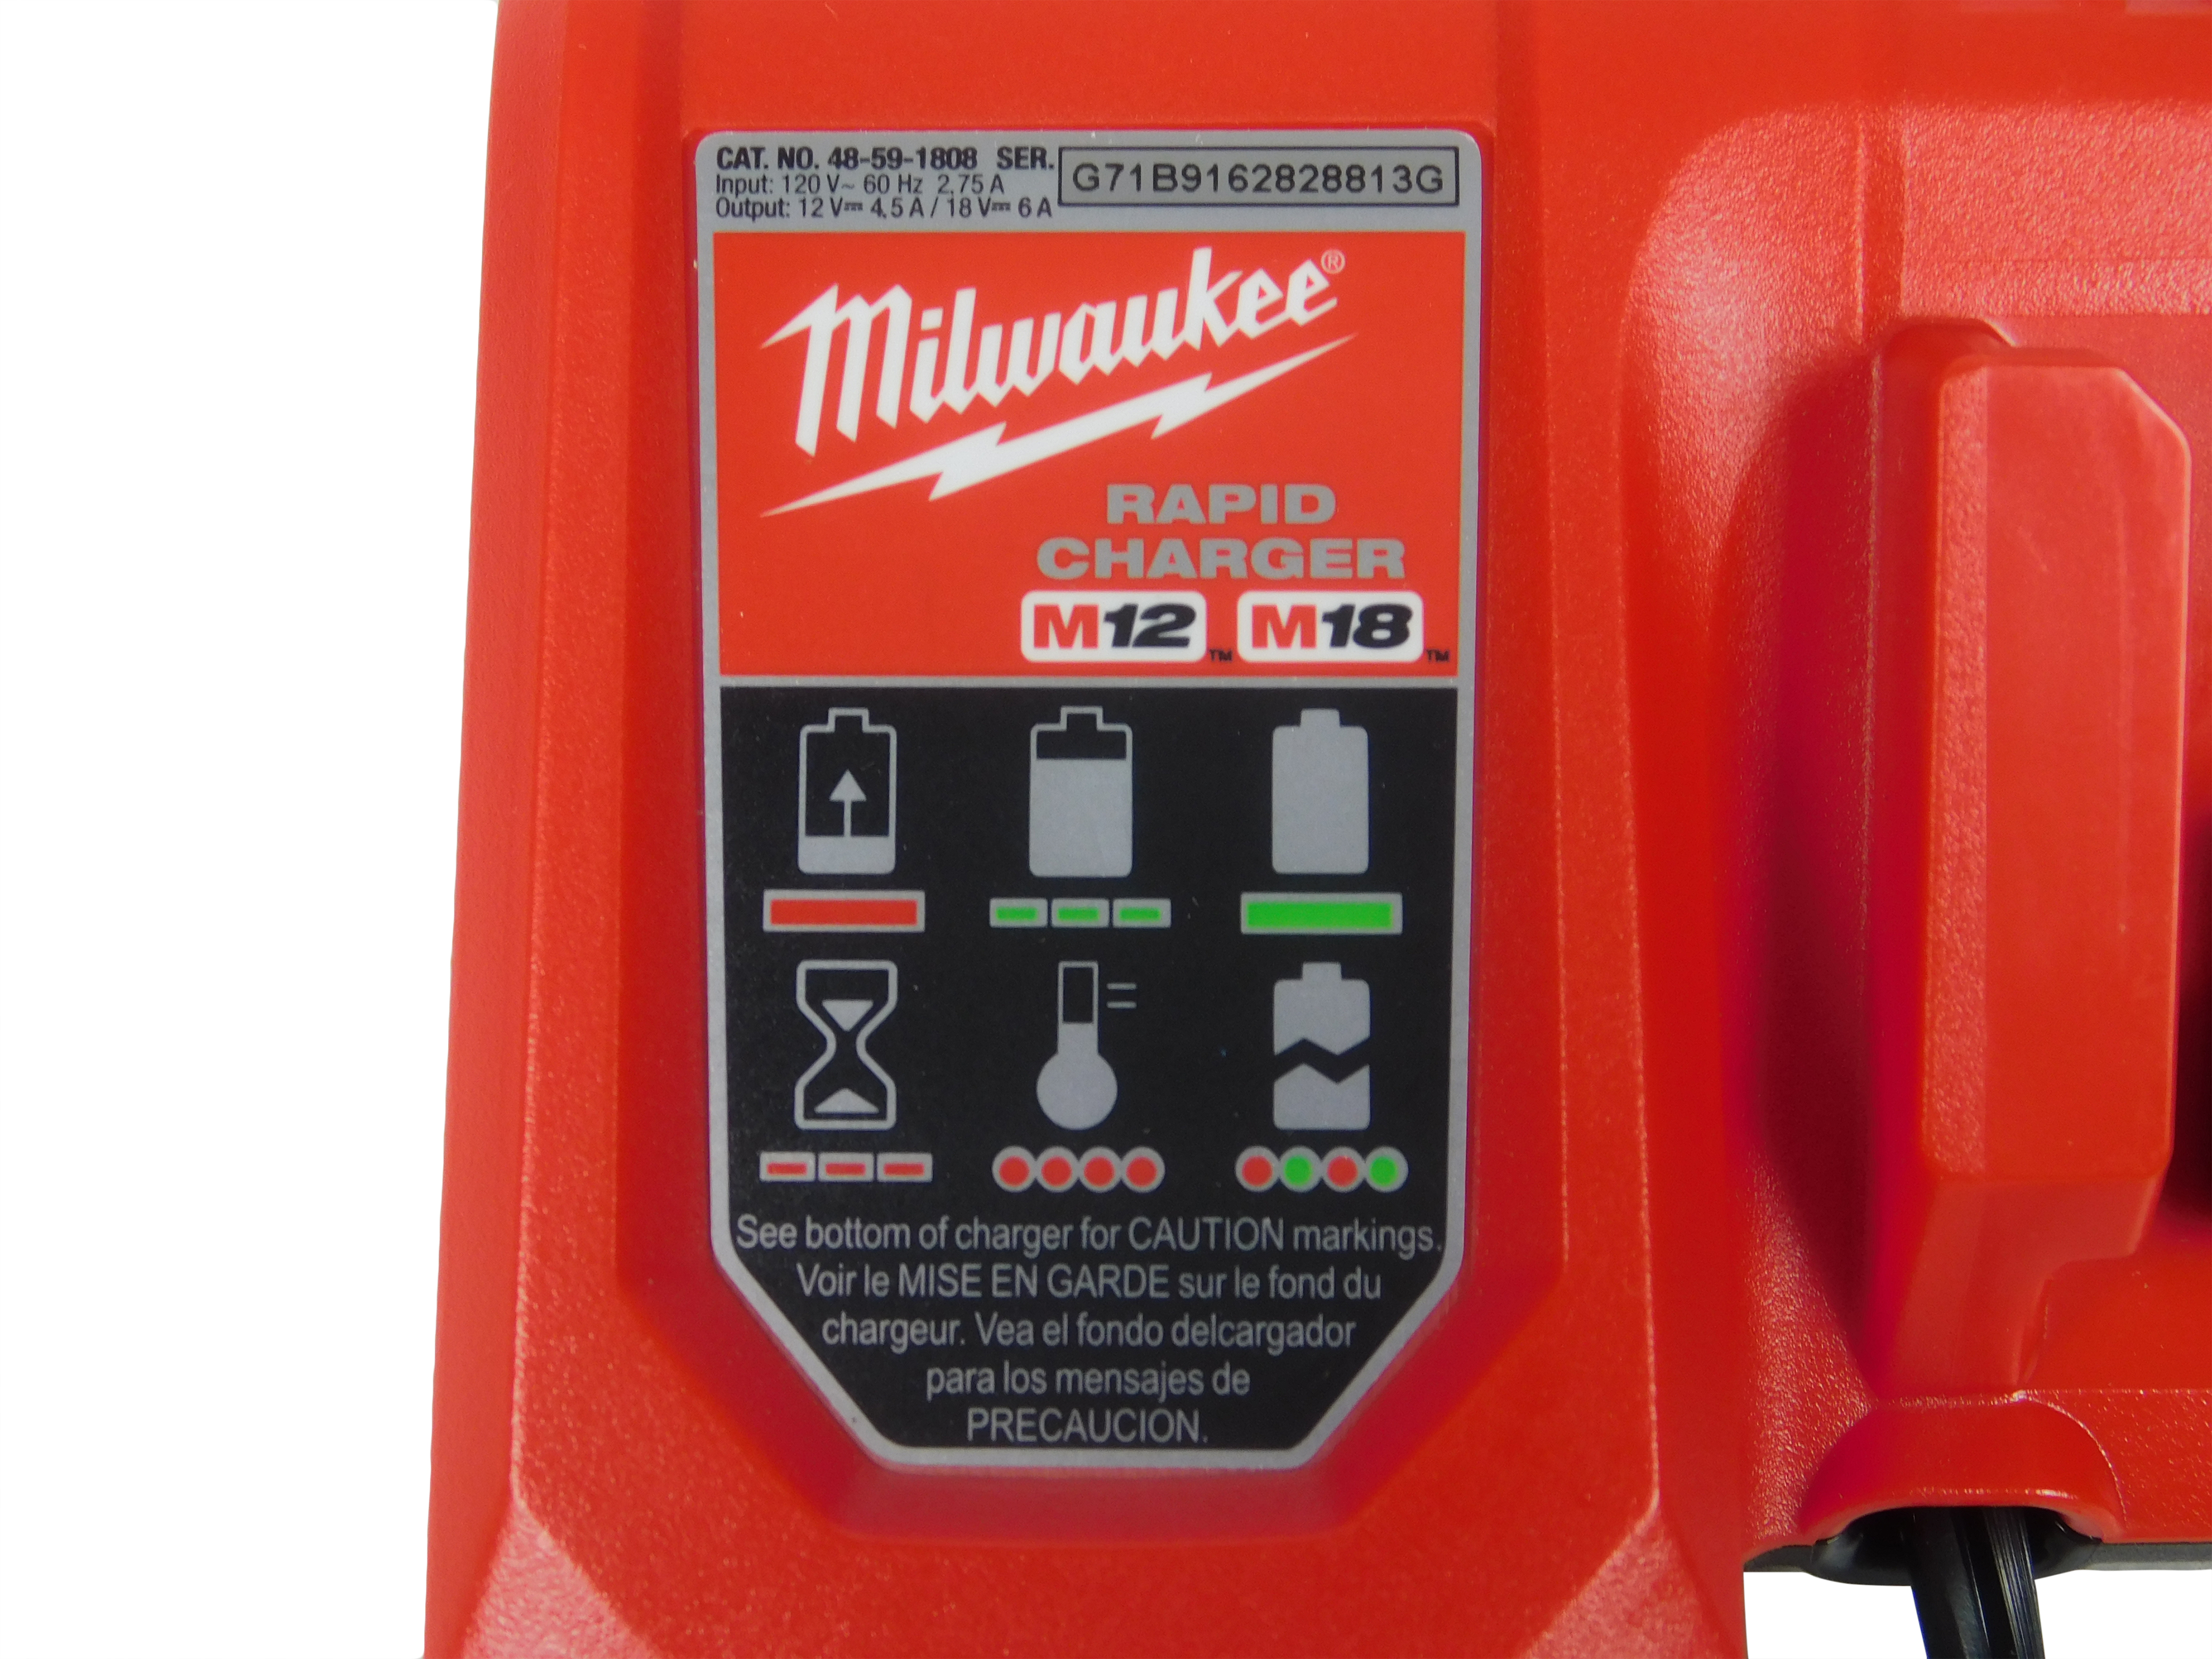 Milwaukee-48-59-1808-M18-M12-Lithium-Ion-Battery-Rapid-Charger-image-4